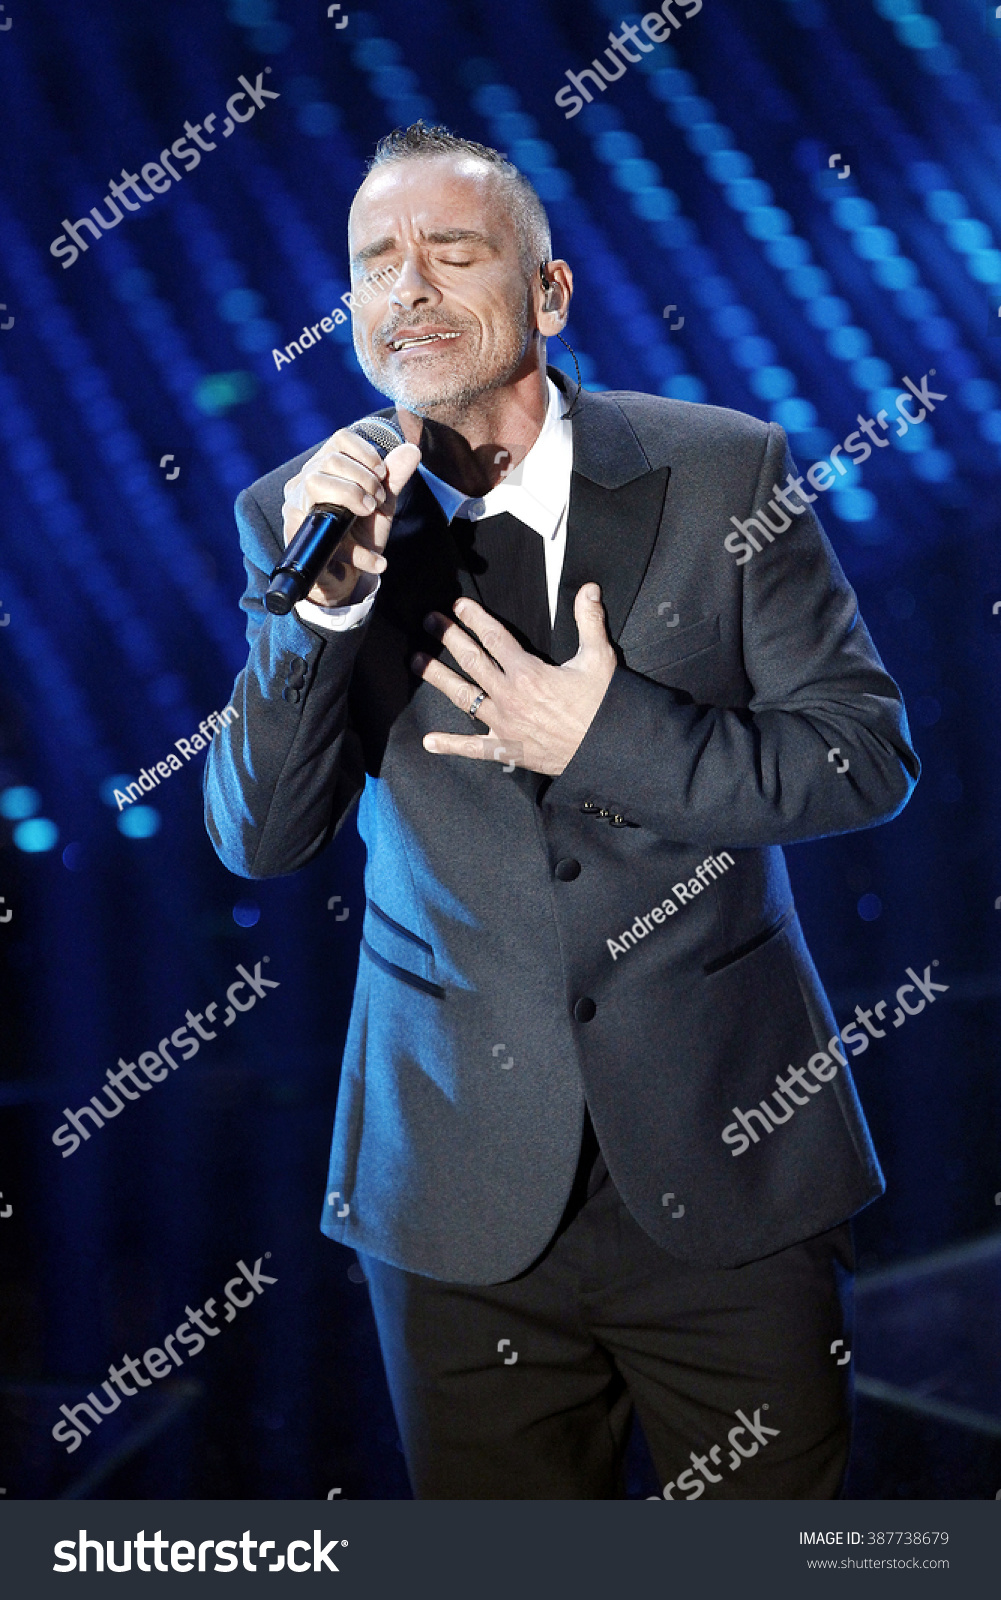 Sanremo Italy February 10 Eros Ramazzotti Performs During The Second Night Of Sanremo